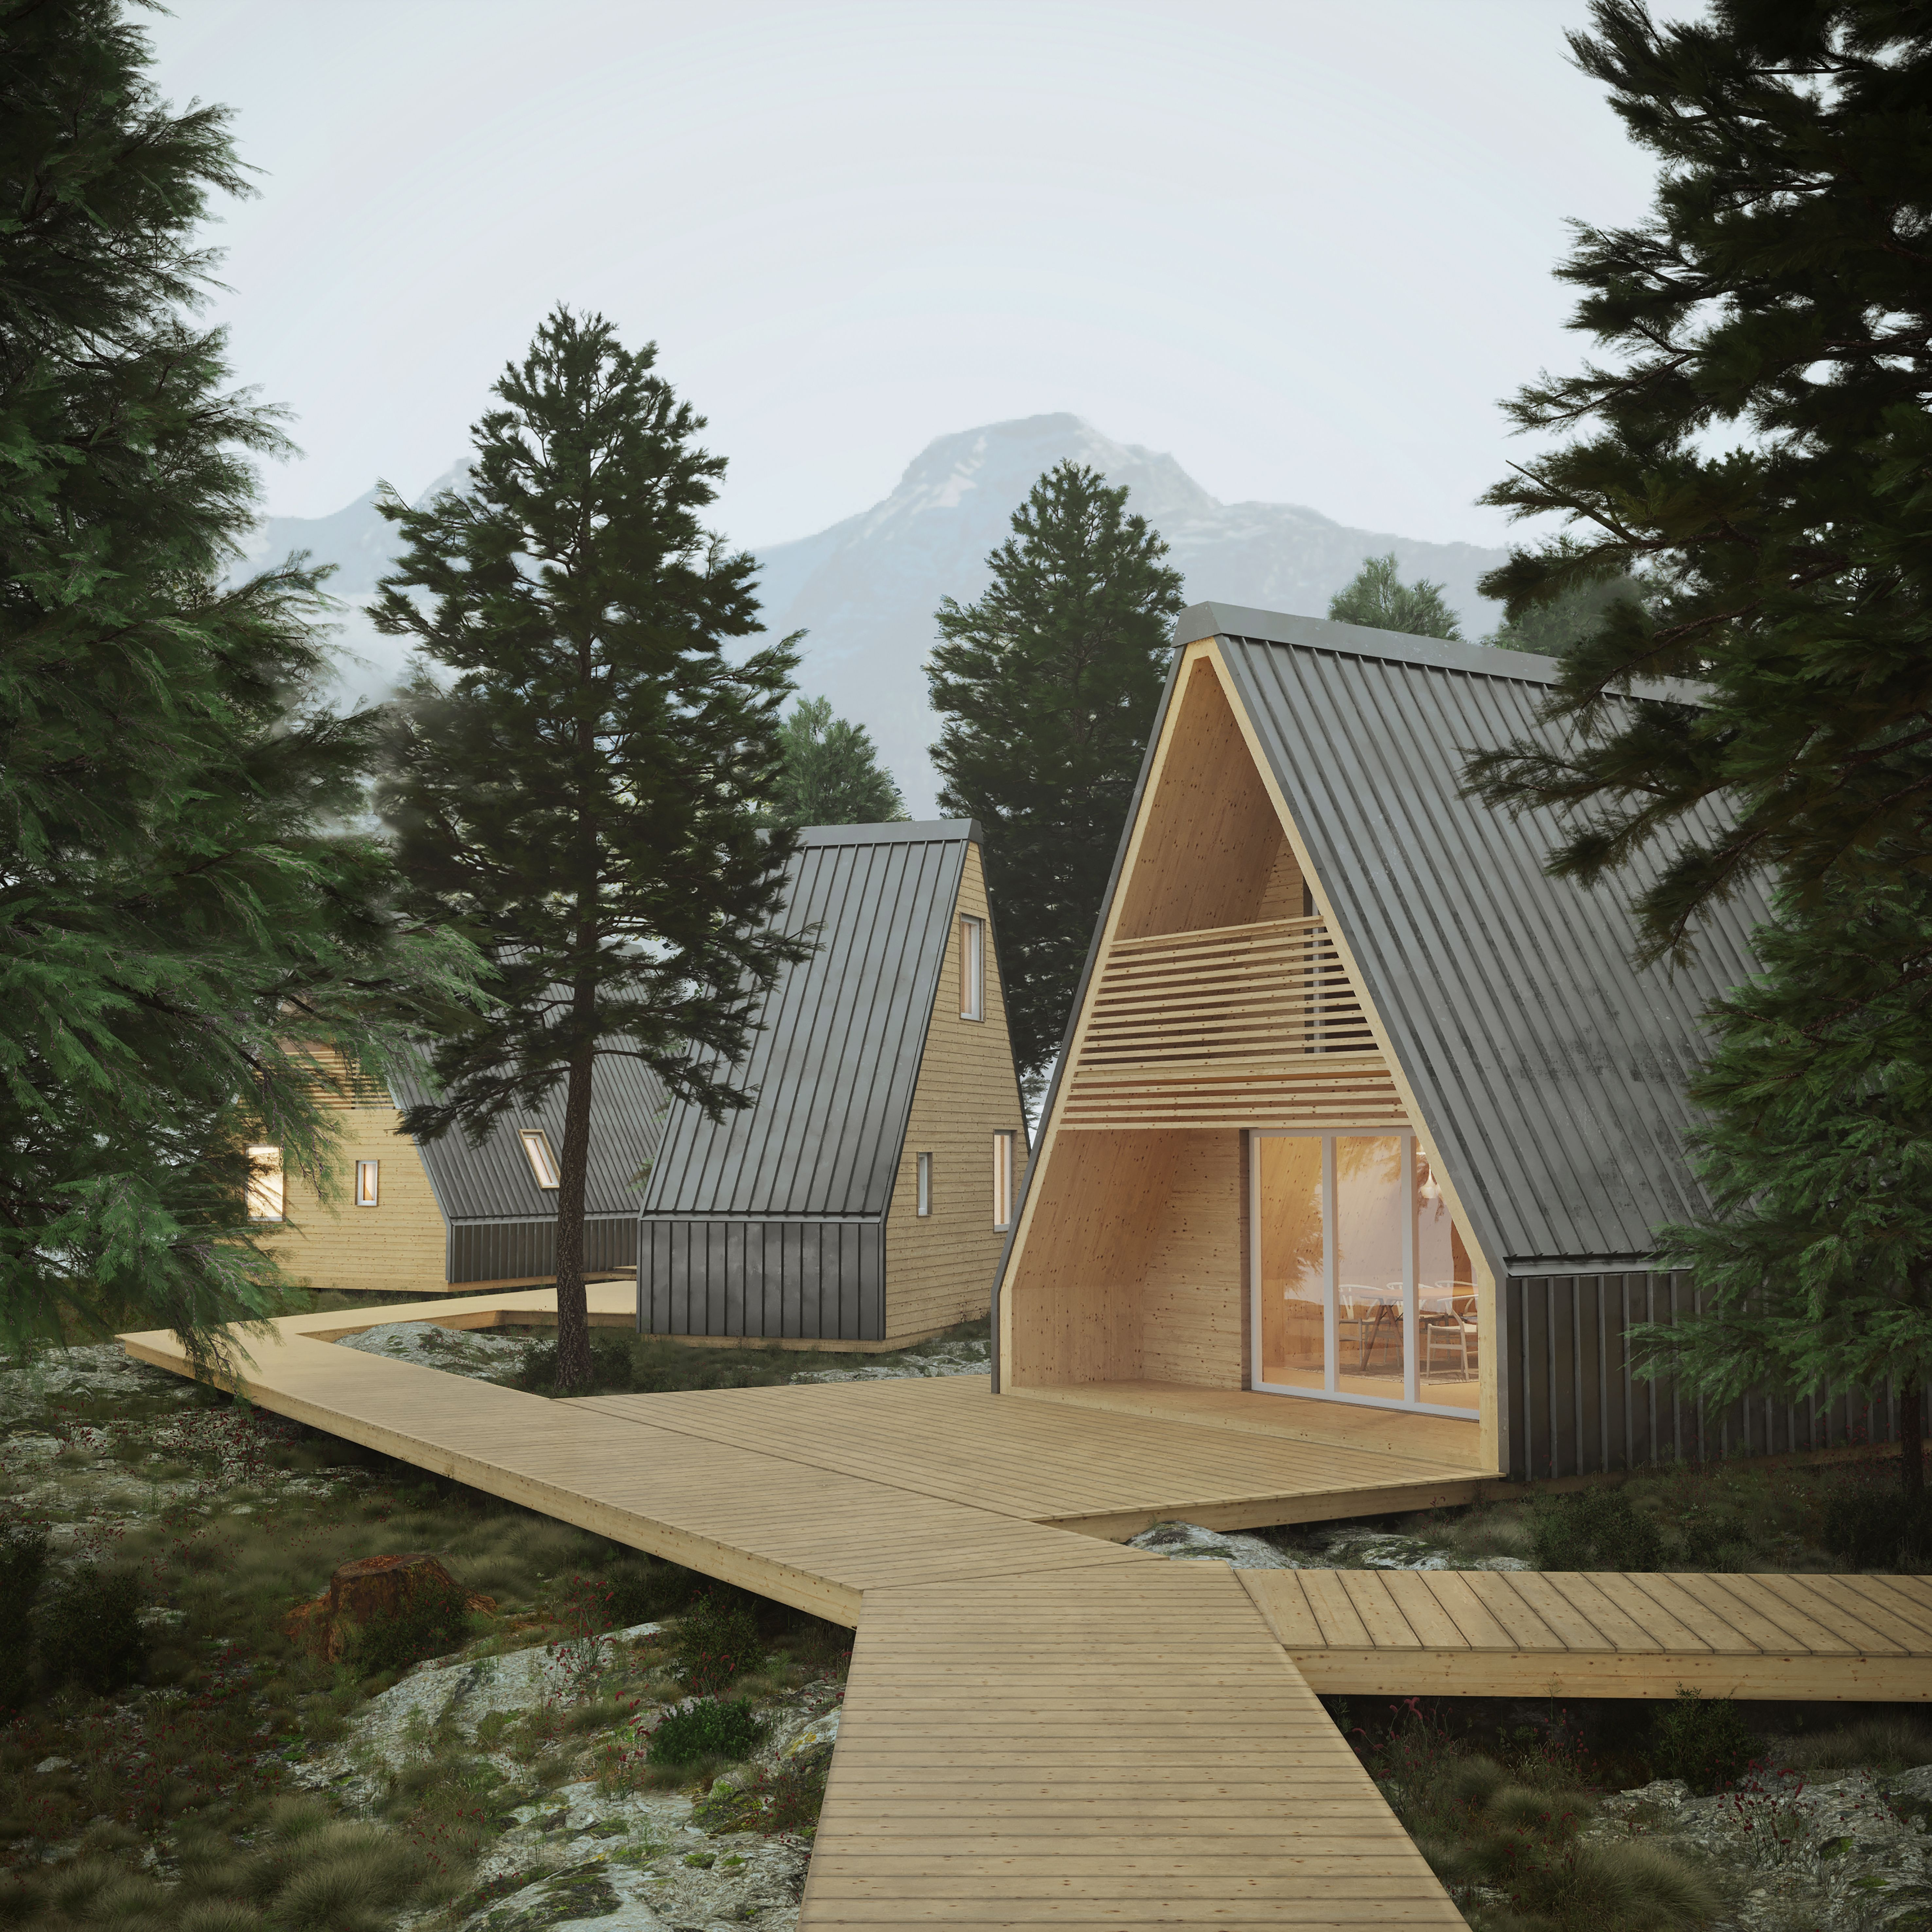 Build your own tiny house. Check out these plans and